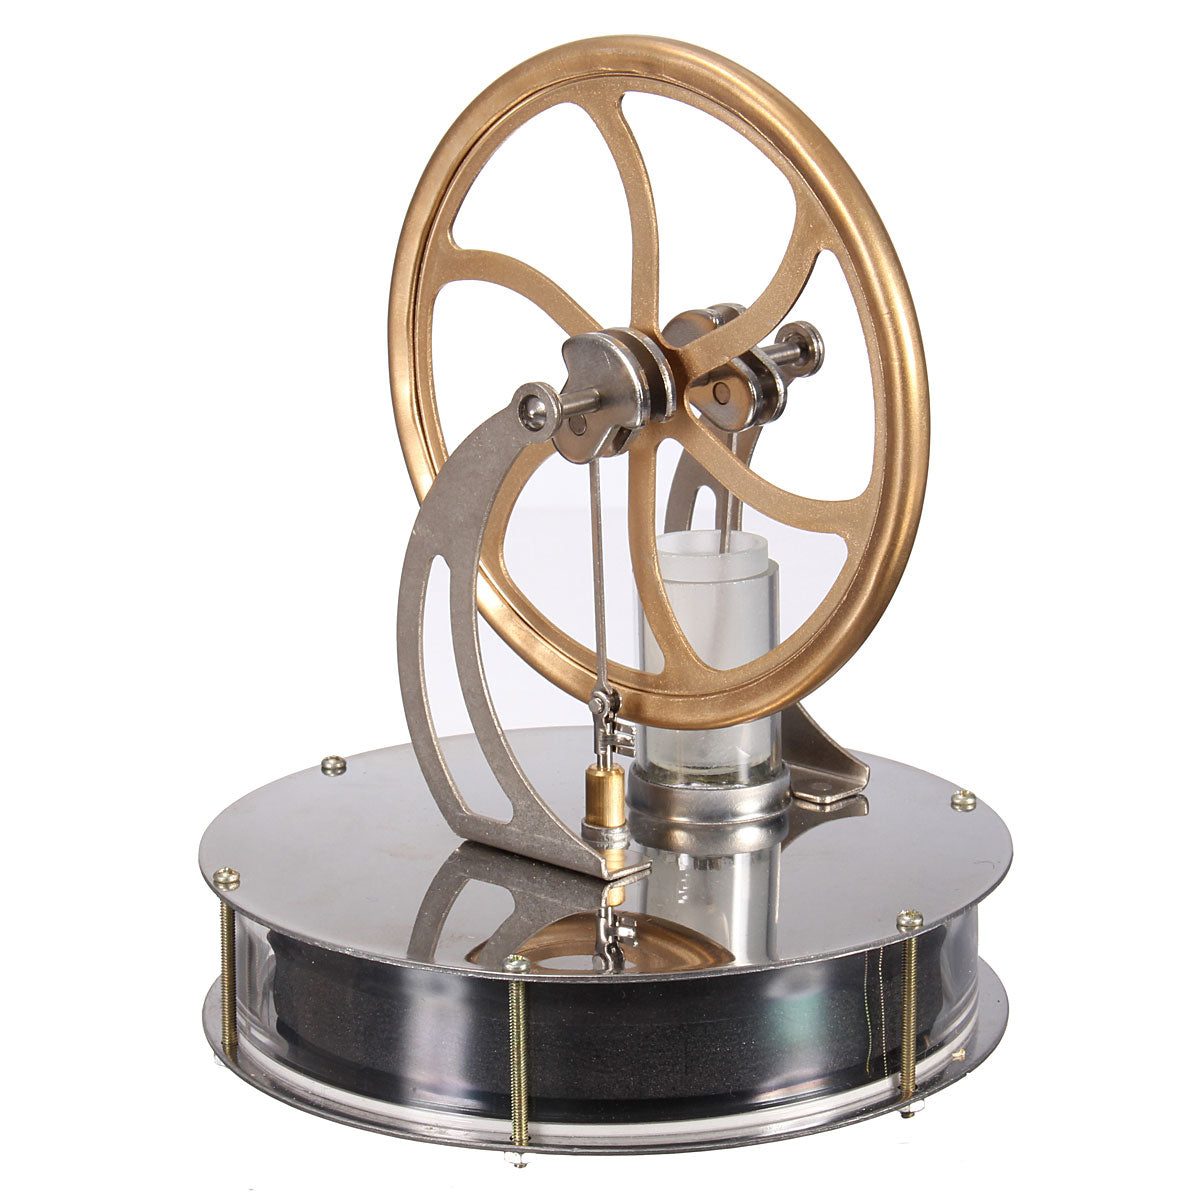 cozyrex,Low Temperature Stirling Engine Motor Temperature Difference Cool Model Educational Toy,CozyRex,